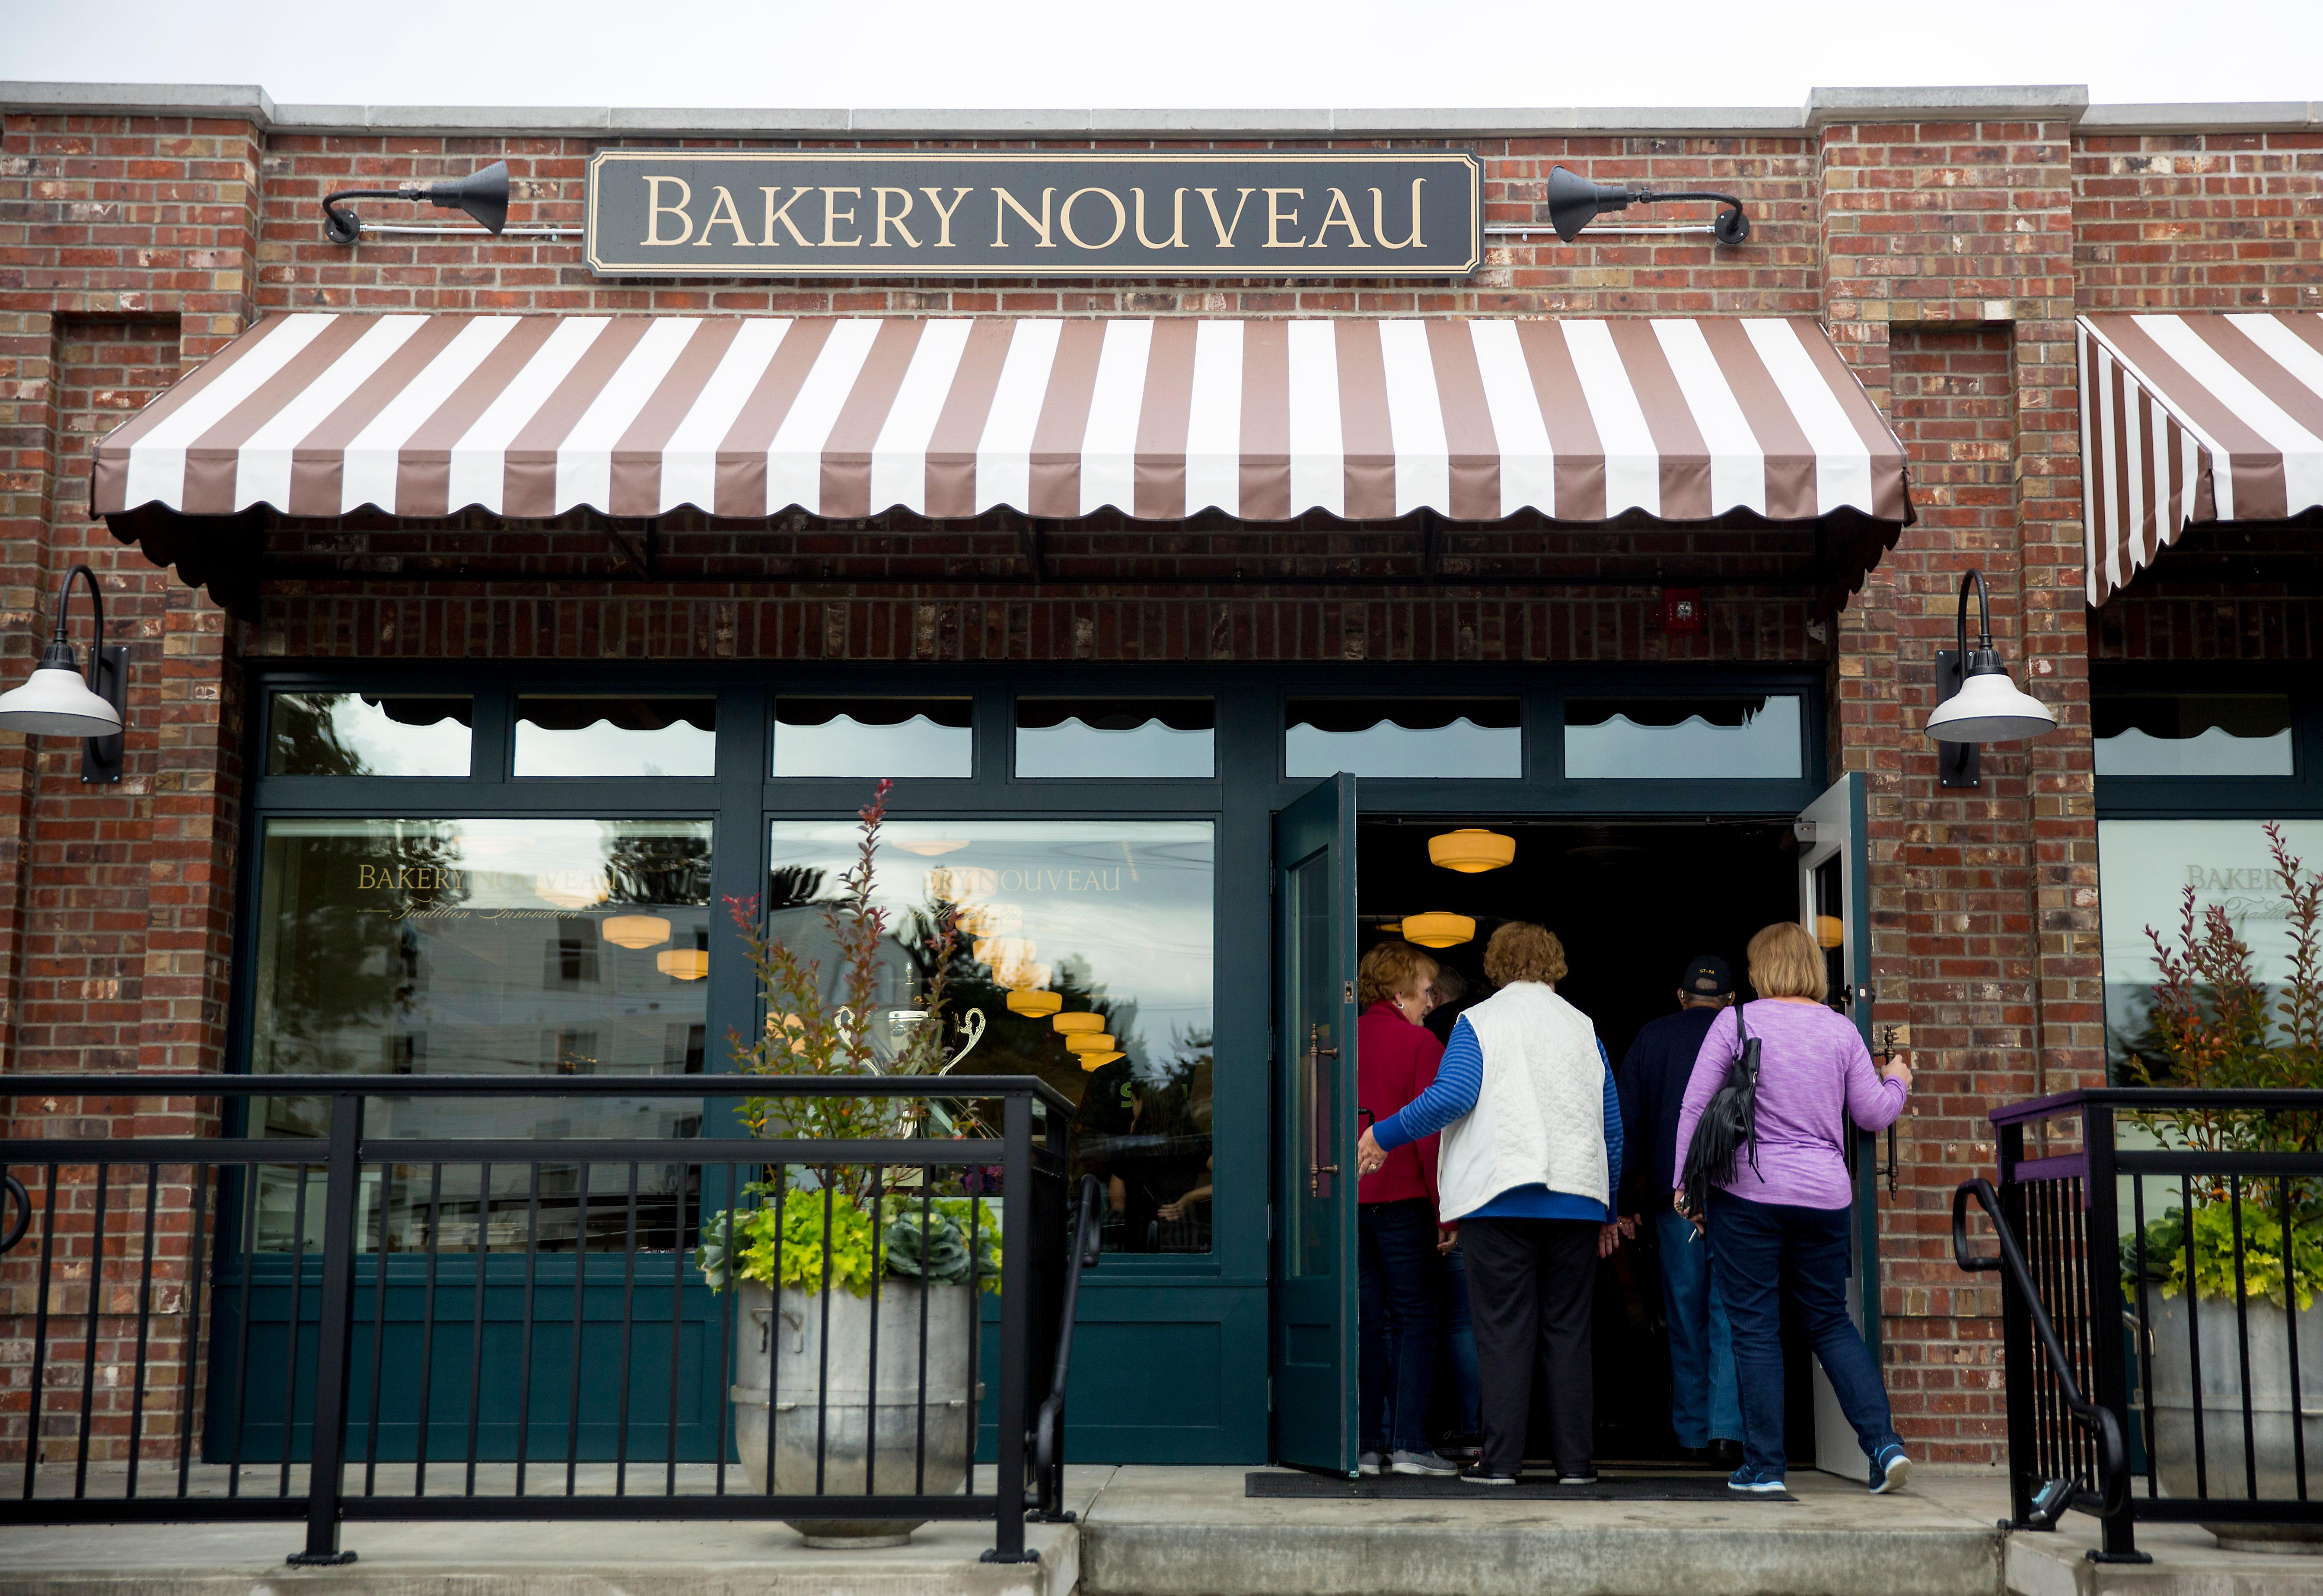 The co-owners of Bakery Nouveau, chef William Leaman and CEO Heather Leaman, just opened their newest cafe AND flagship store in Burien this week. The bakery and cafe is the third location of the iconic eatery, after it's West Seattle and Capitol Hill locations. The new flagship shop is their largest, at nearly 7,500 square-feet with seating for 22 inside and about 12 outside. They'll be open daily serving pastries, cakes, and breads—as well as house-made gelato and savory options. The new shop houses much-expanded chocolate production, which guests can get a glimpse of through a window in the floor. They can also take a peek at bakers laminating dough and finishing up chocolate confections up on the main level, where there are plenty of peek-a-boo views of the action. Bakery Nouveau is located at 426 SW 153rd Street in Burien, Washington. (Image: Sy Bean / Seattle Refined)